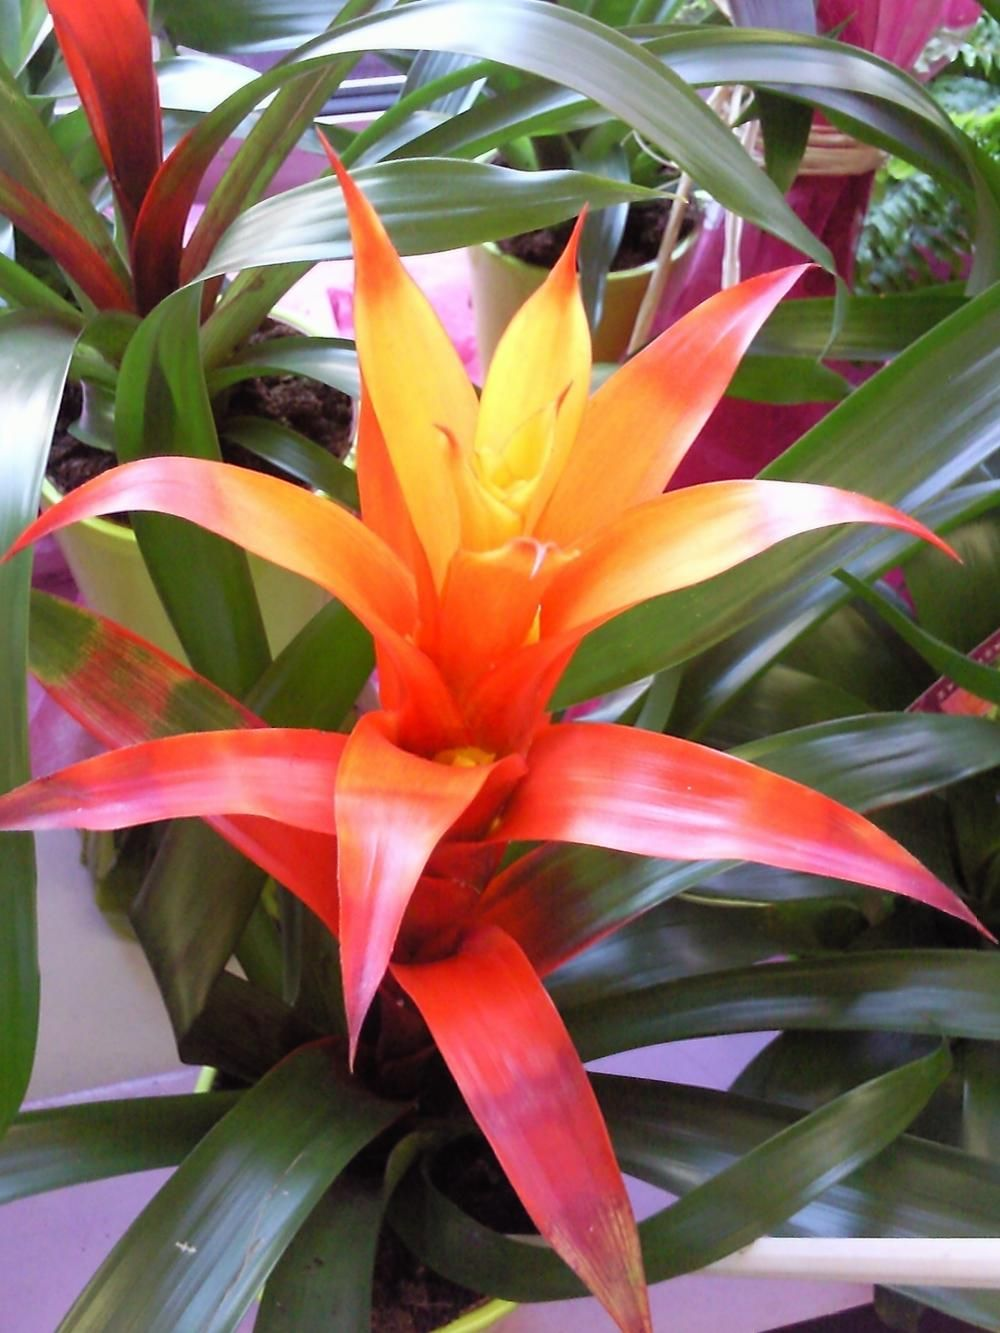 plante exotique int rieur plantes exotiques bromelia orang rouge prune jaune curcuma rose. Black Bedroom Furniture Sets. Home Design Ideas